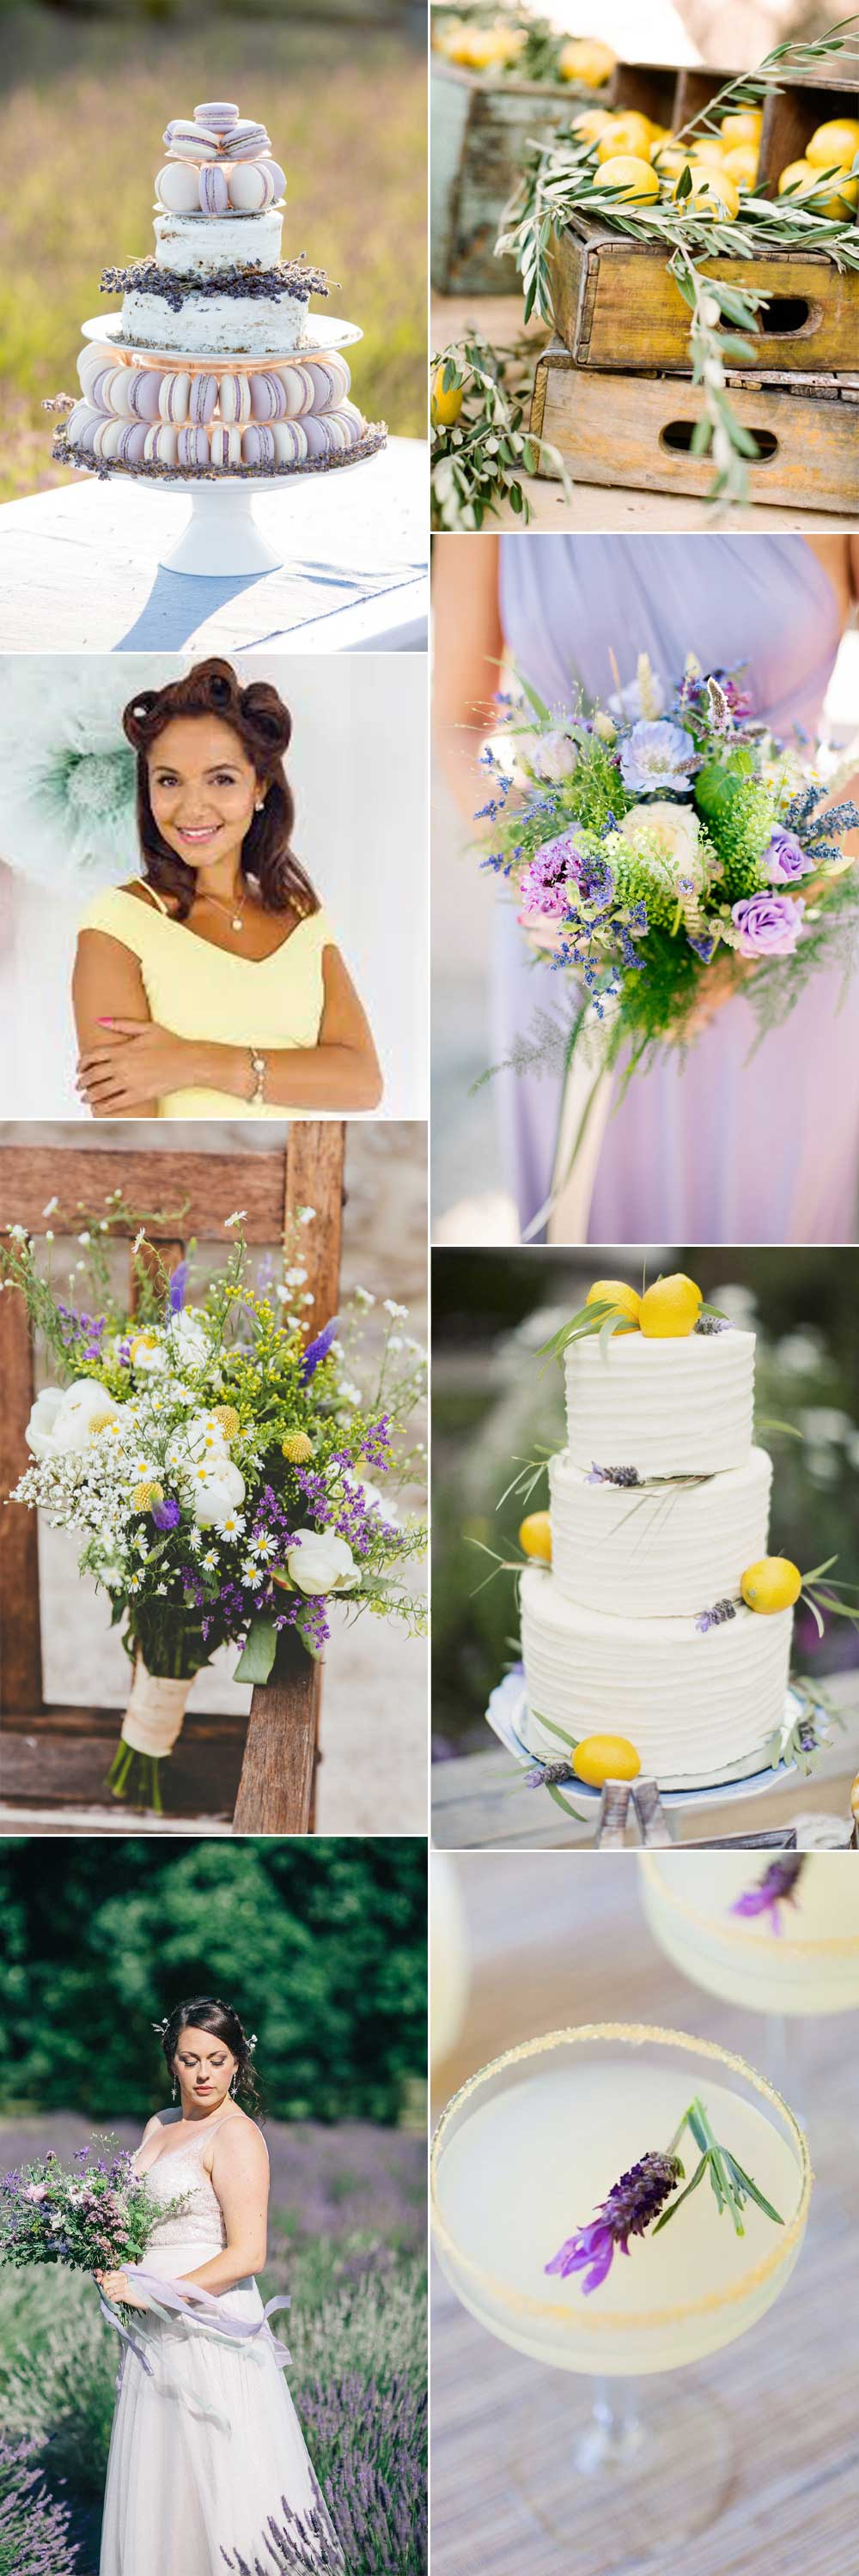 Pretty lemon and lavender wedding ideas